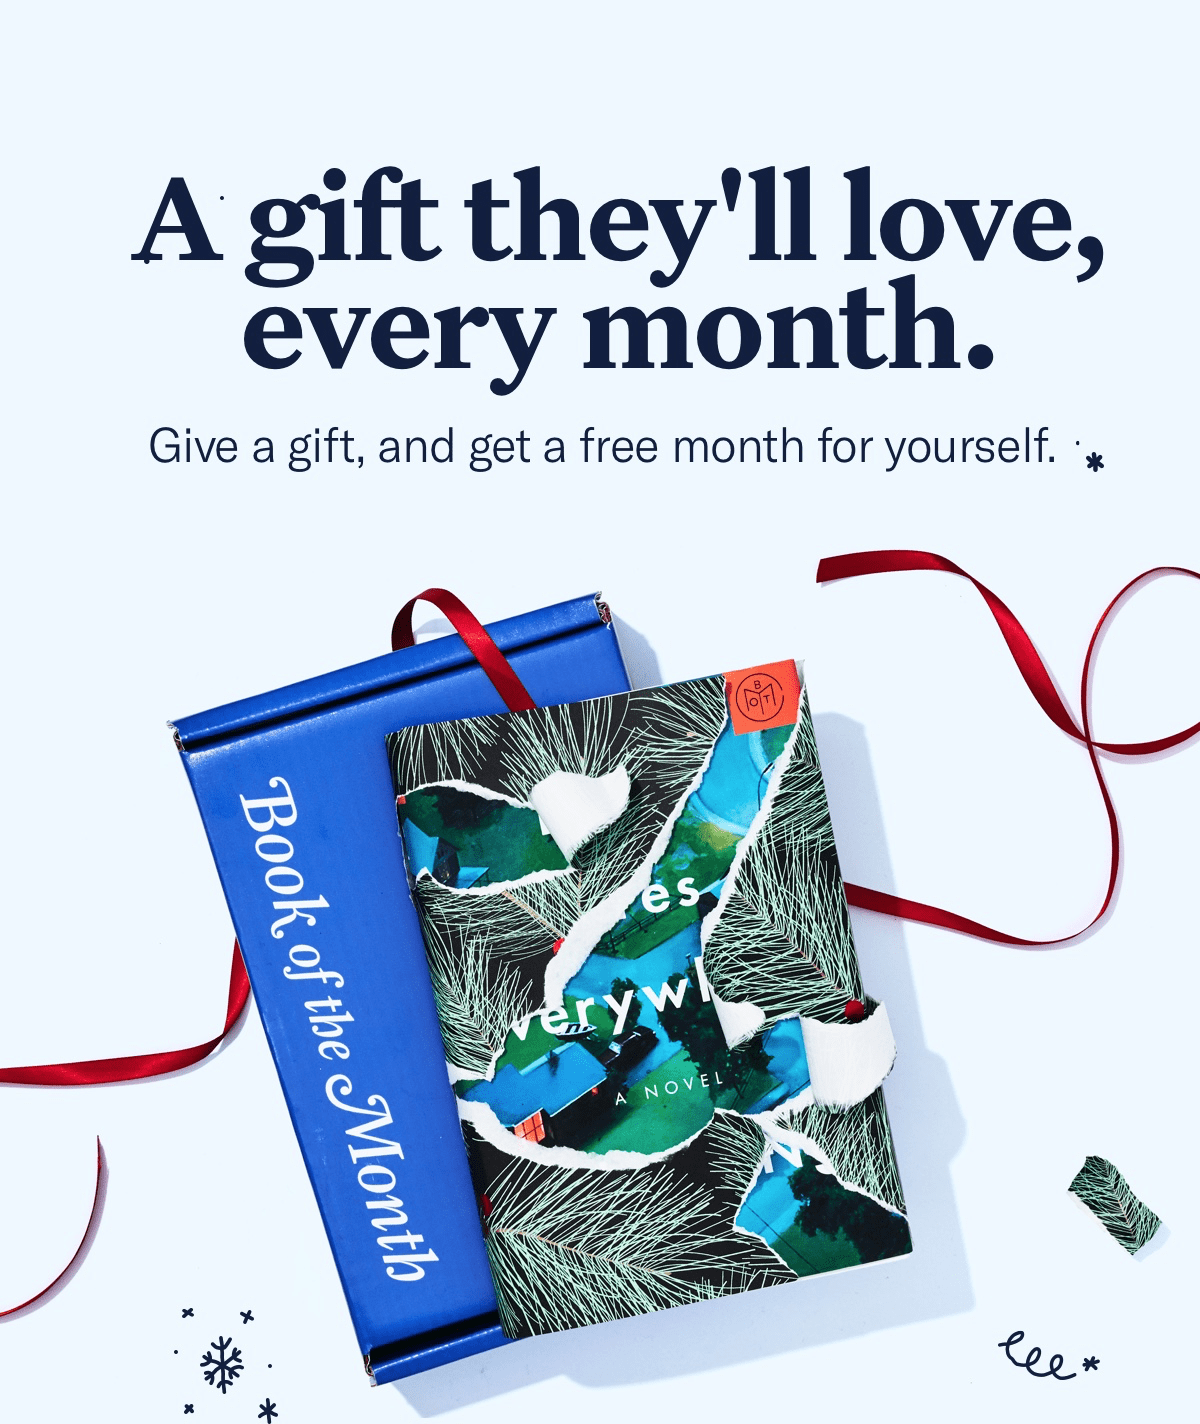 Book of the Month Deal: Give a Gift, Get a Free Month! LAST DAY!